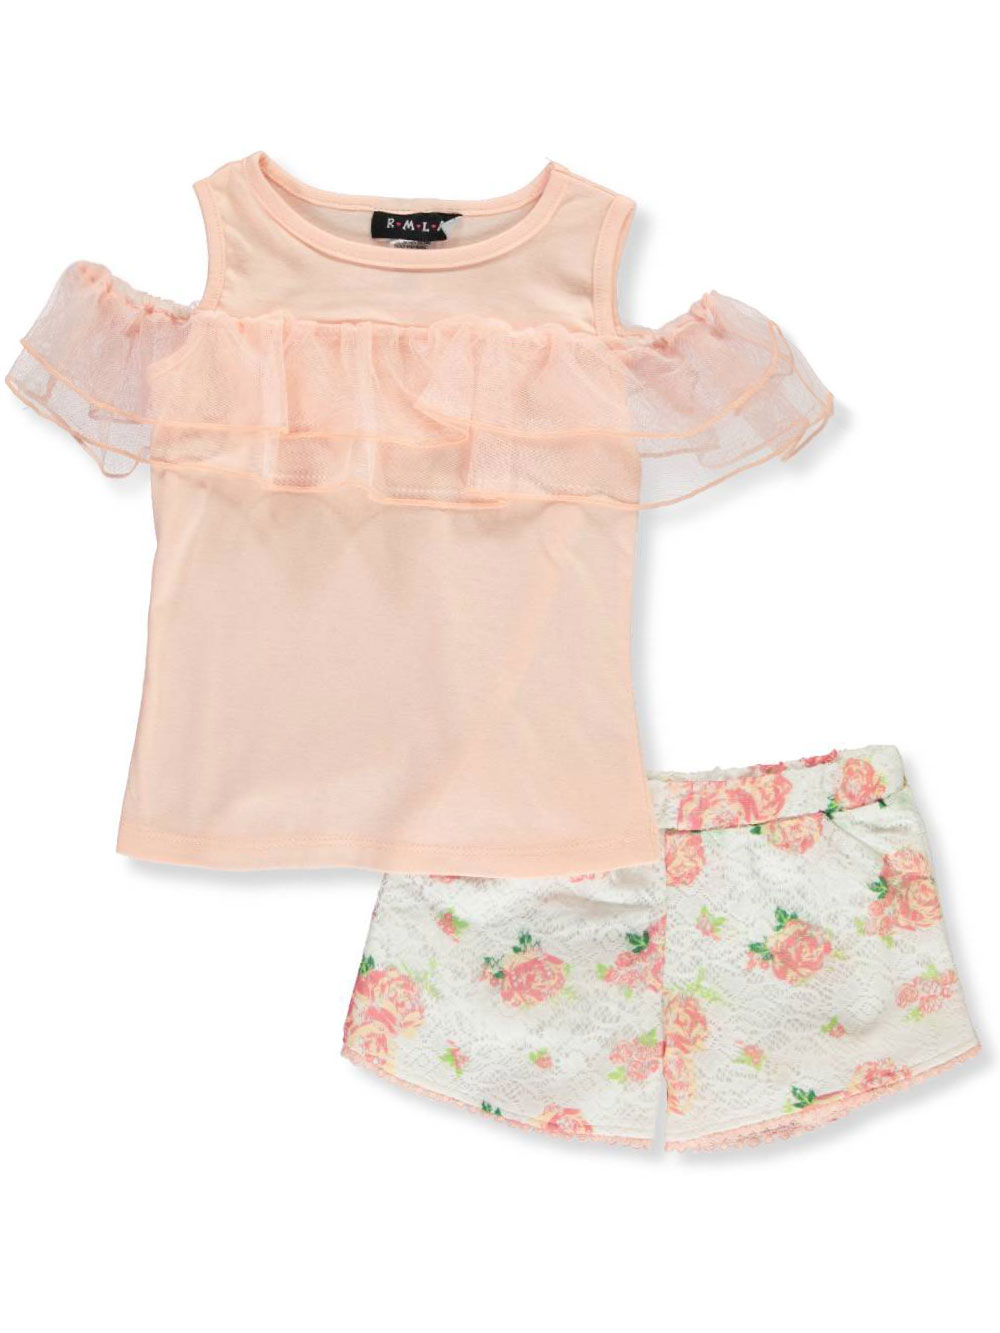 RMLA Girls 2-Piece Shorts Set Outfit